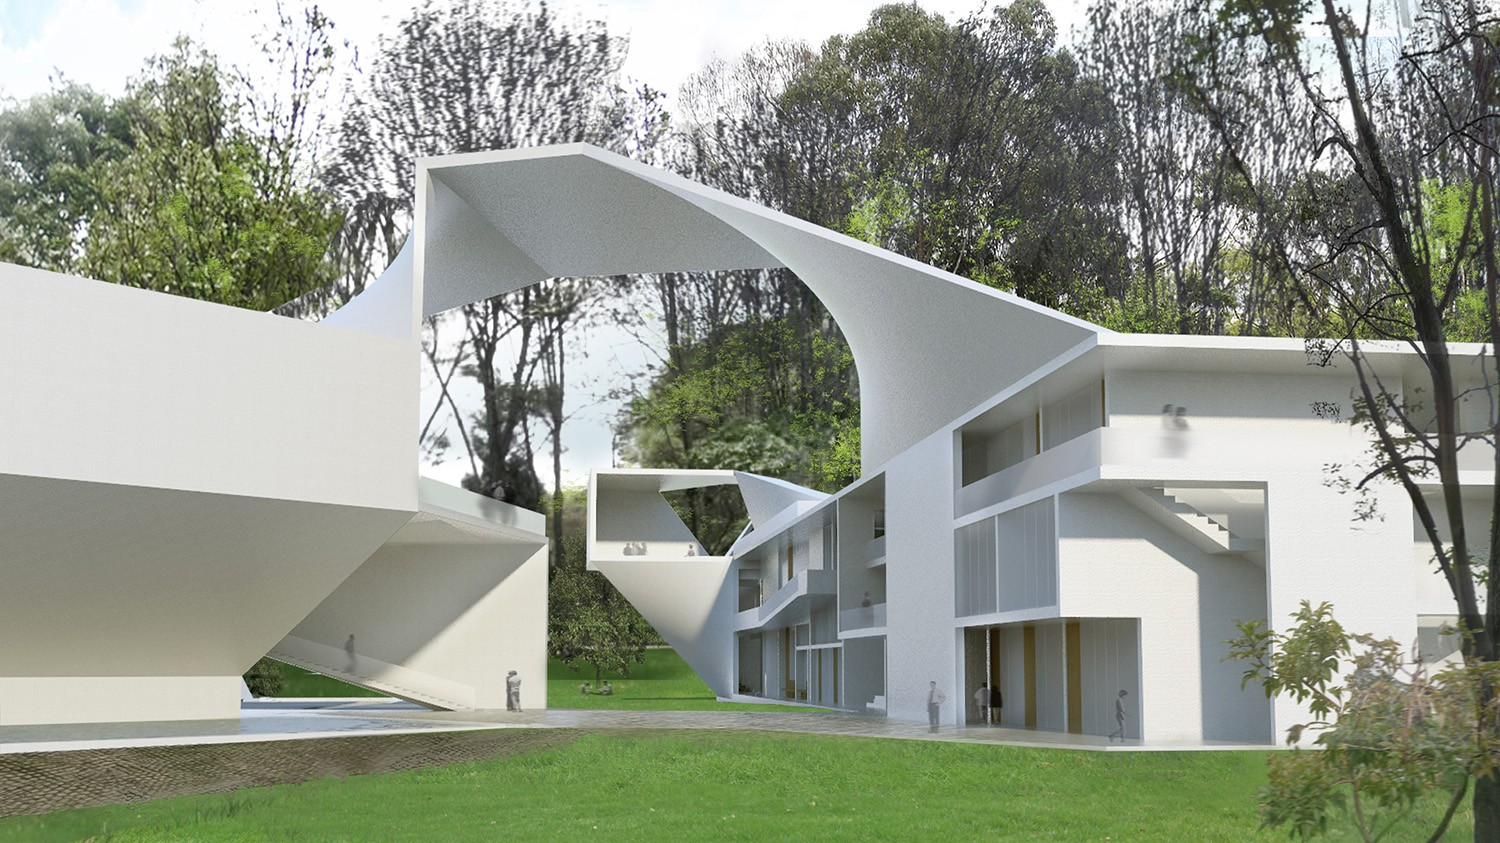 https://s3.us-east-2.amazonaws.com/steven-holl/uploads/projects/project-images/StevenHollArchitects_Bogota_WESTVIEW_WH.jpg